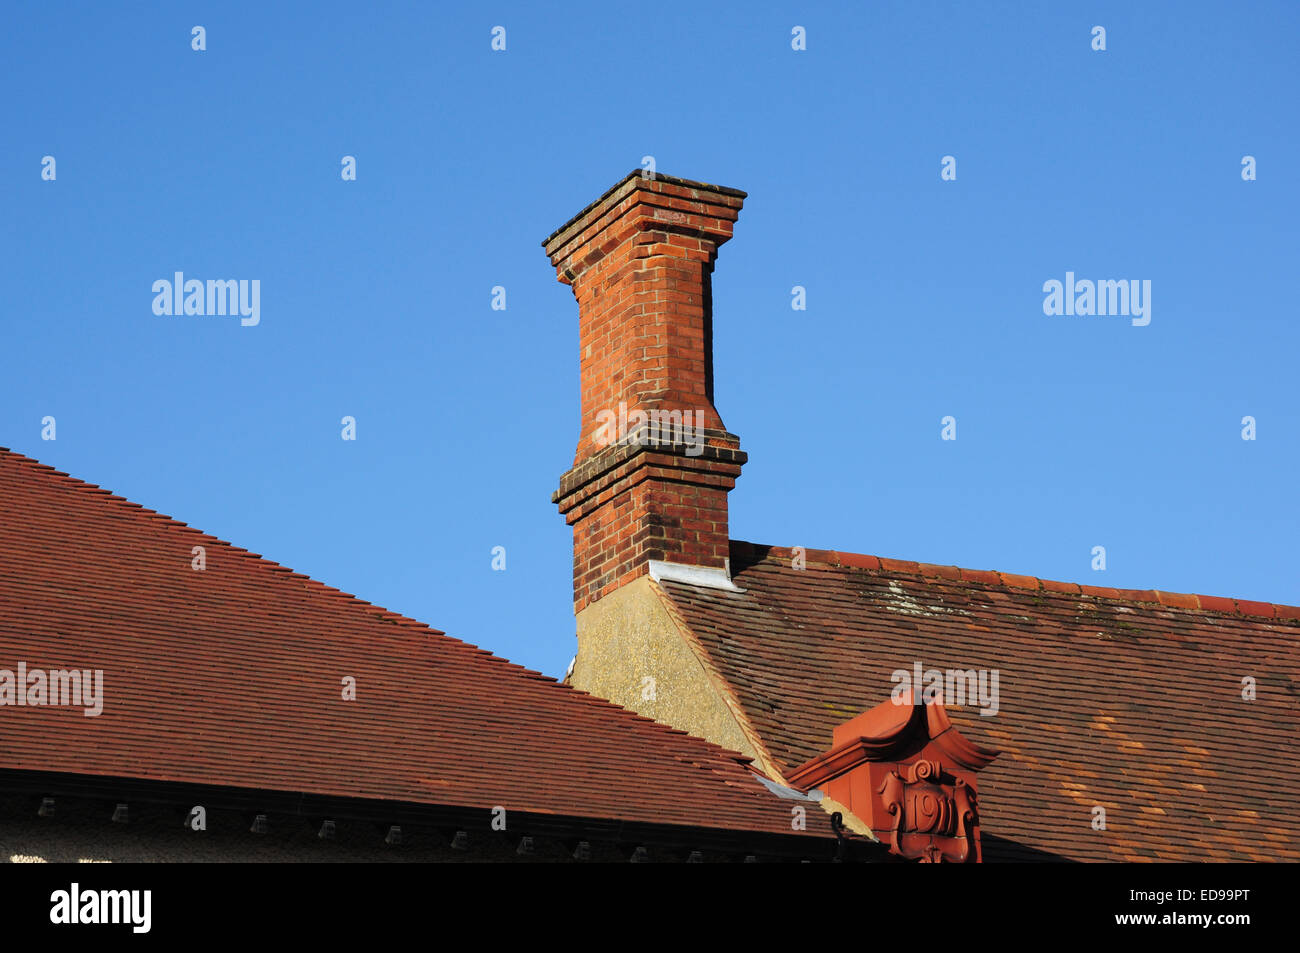 Tiled roofs and chimney stack on old buildings, Hitchin, Hertfordshire, England, UK - Stock Image